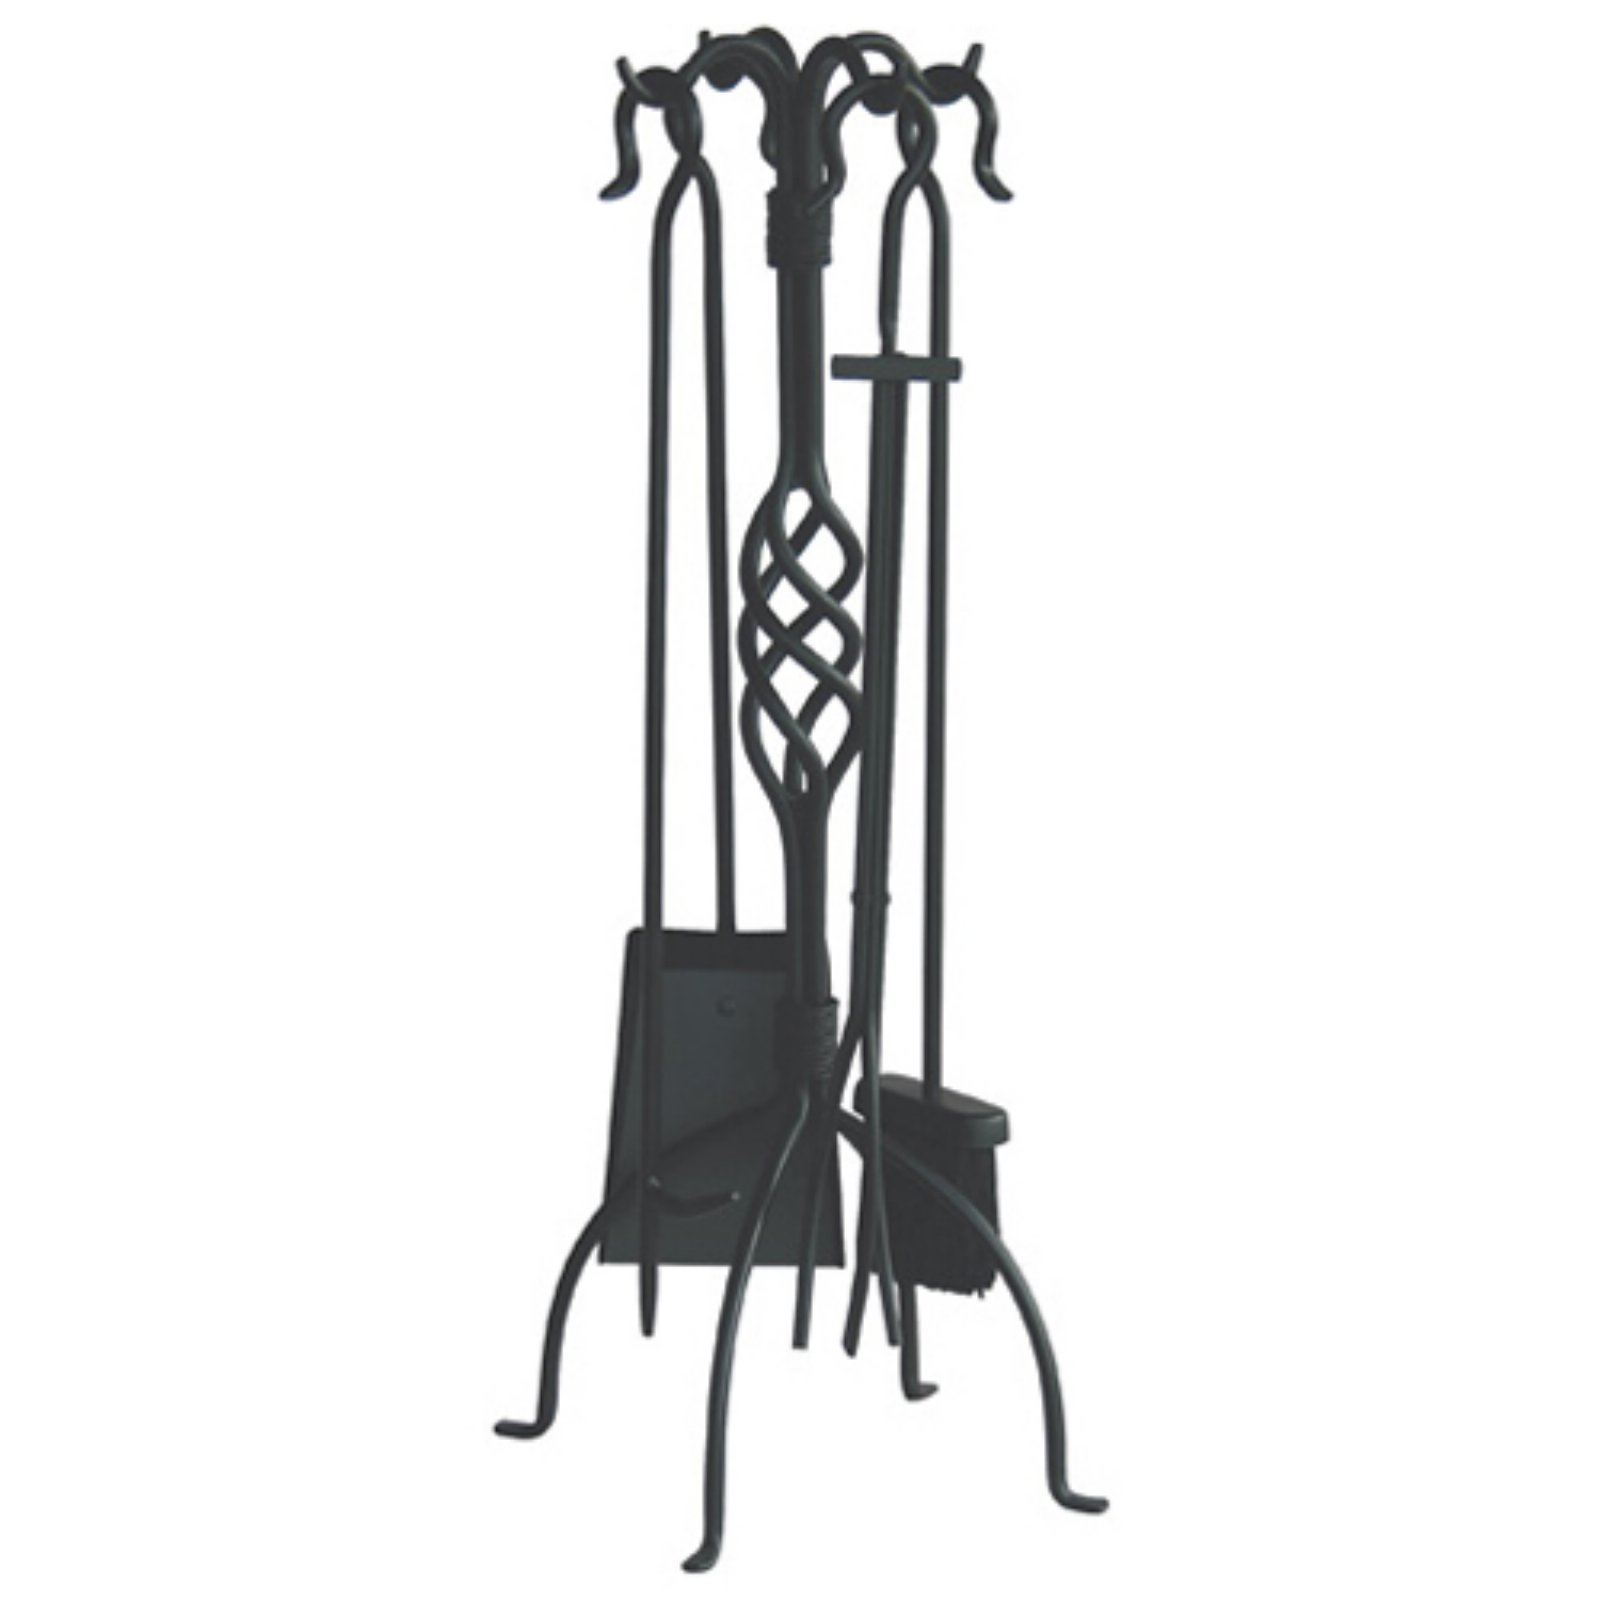 Uniflame Wrought Iron Fireplace Tool Set Black Finish 5 Piece